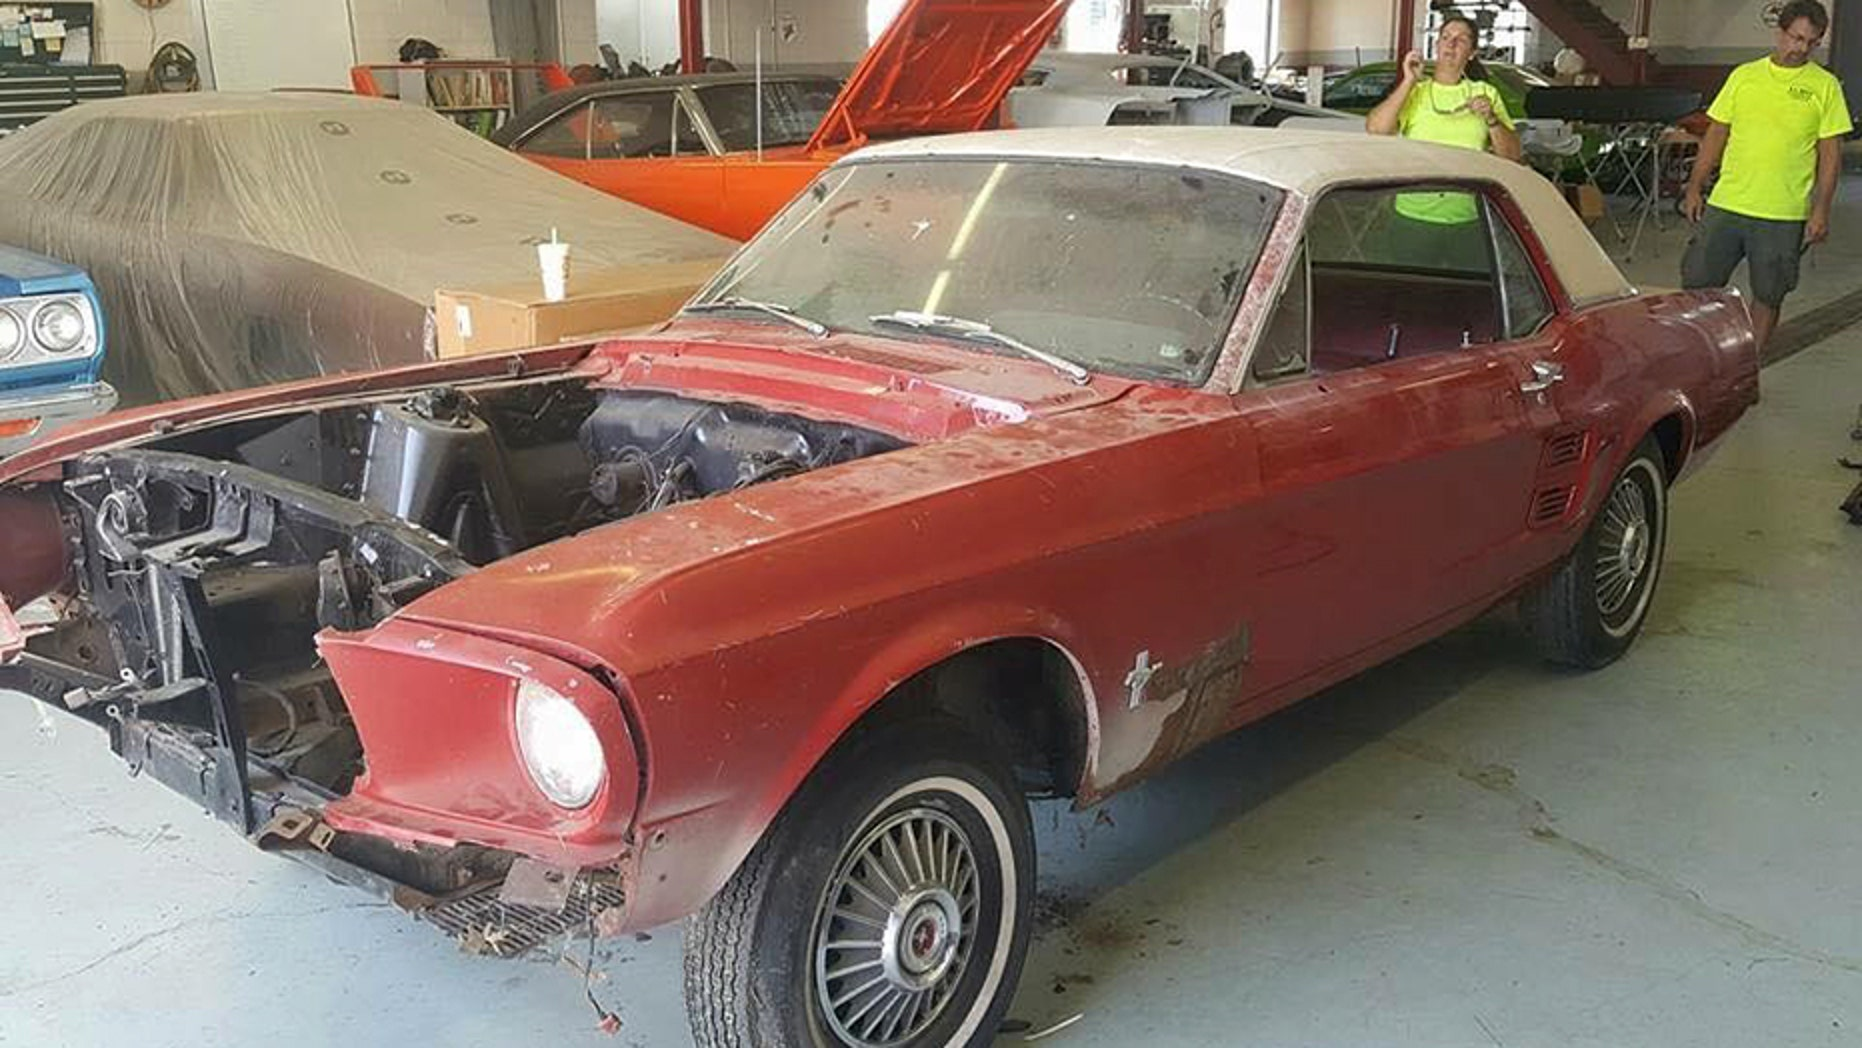 Harry Donovan's 1967 Ford Mustang got an amazing makeover years after having been stolen.